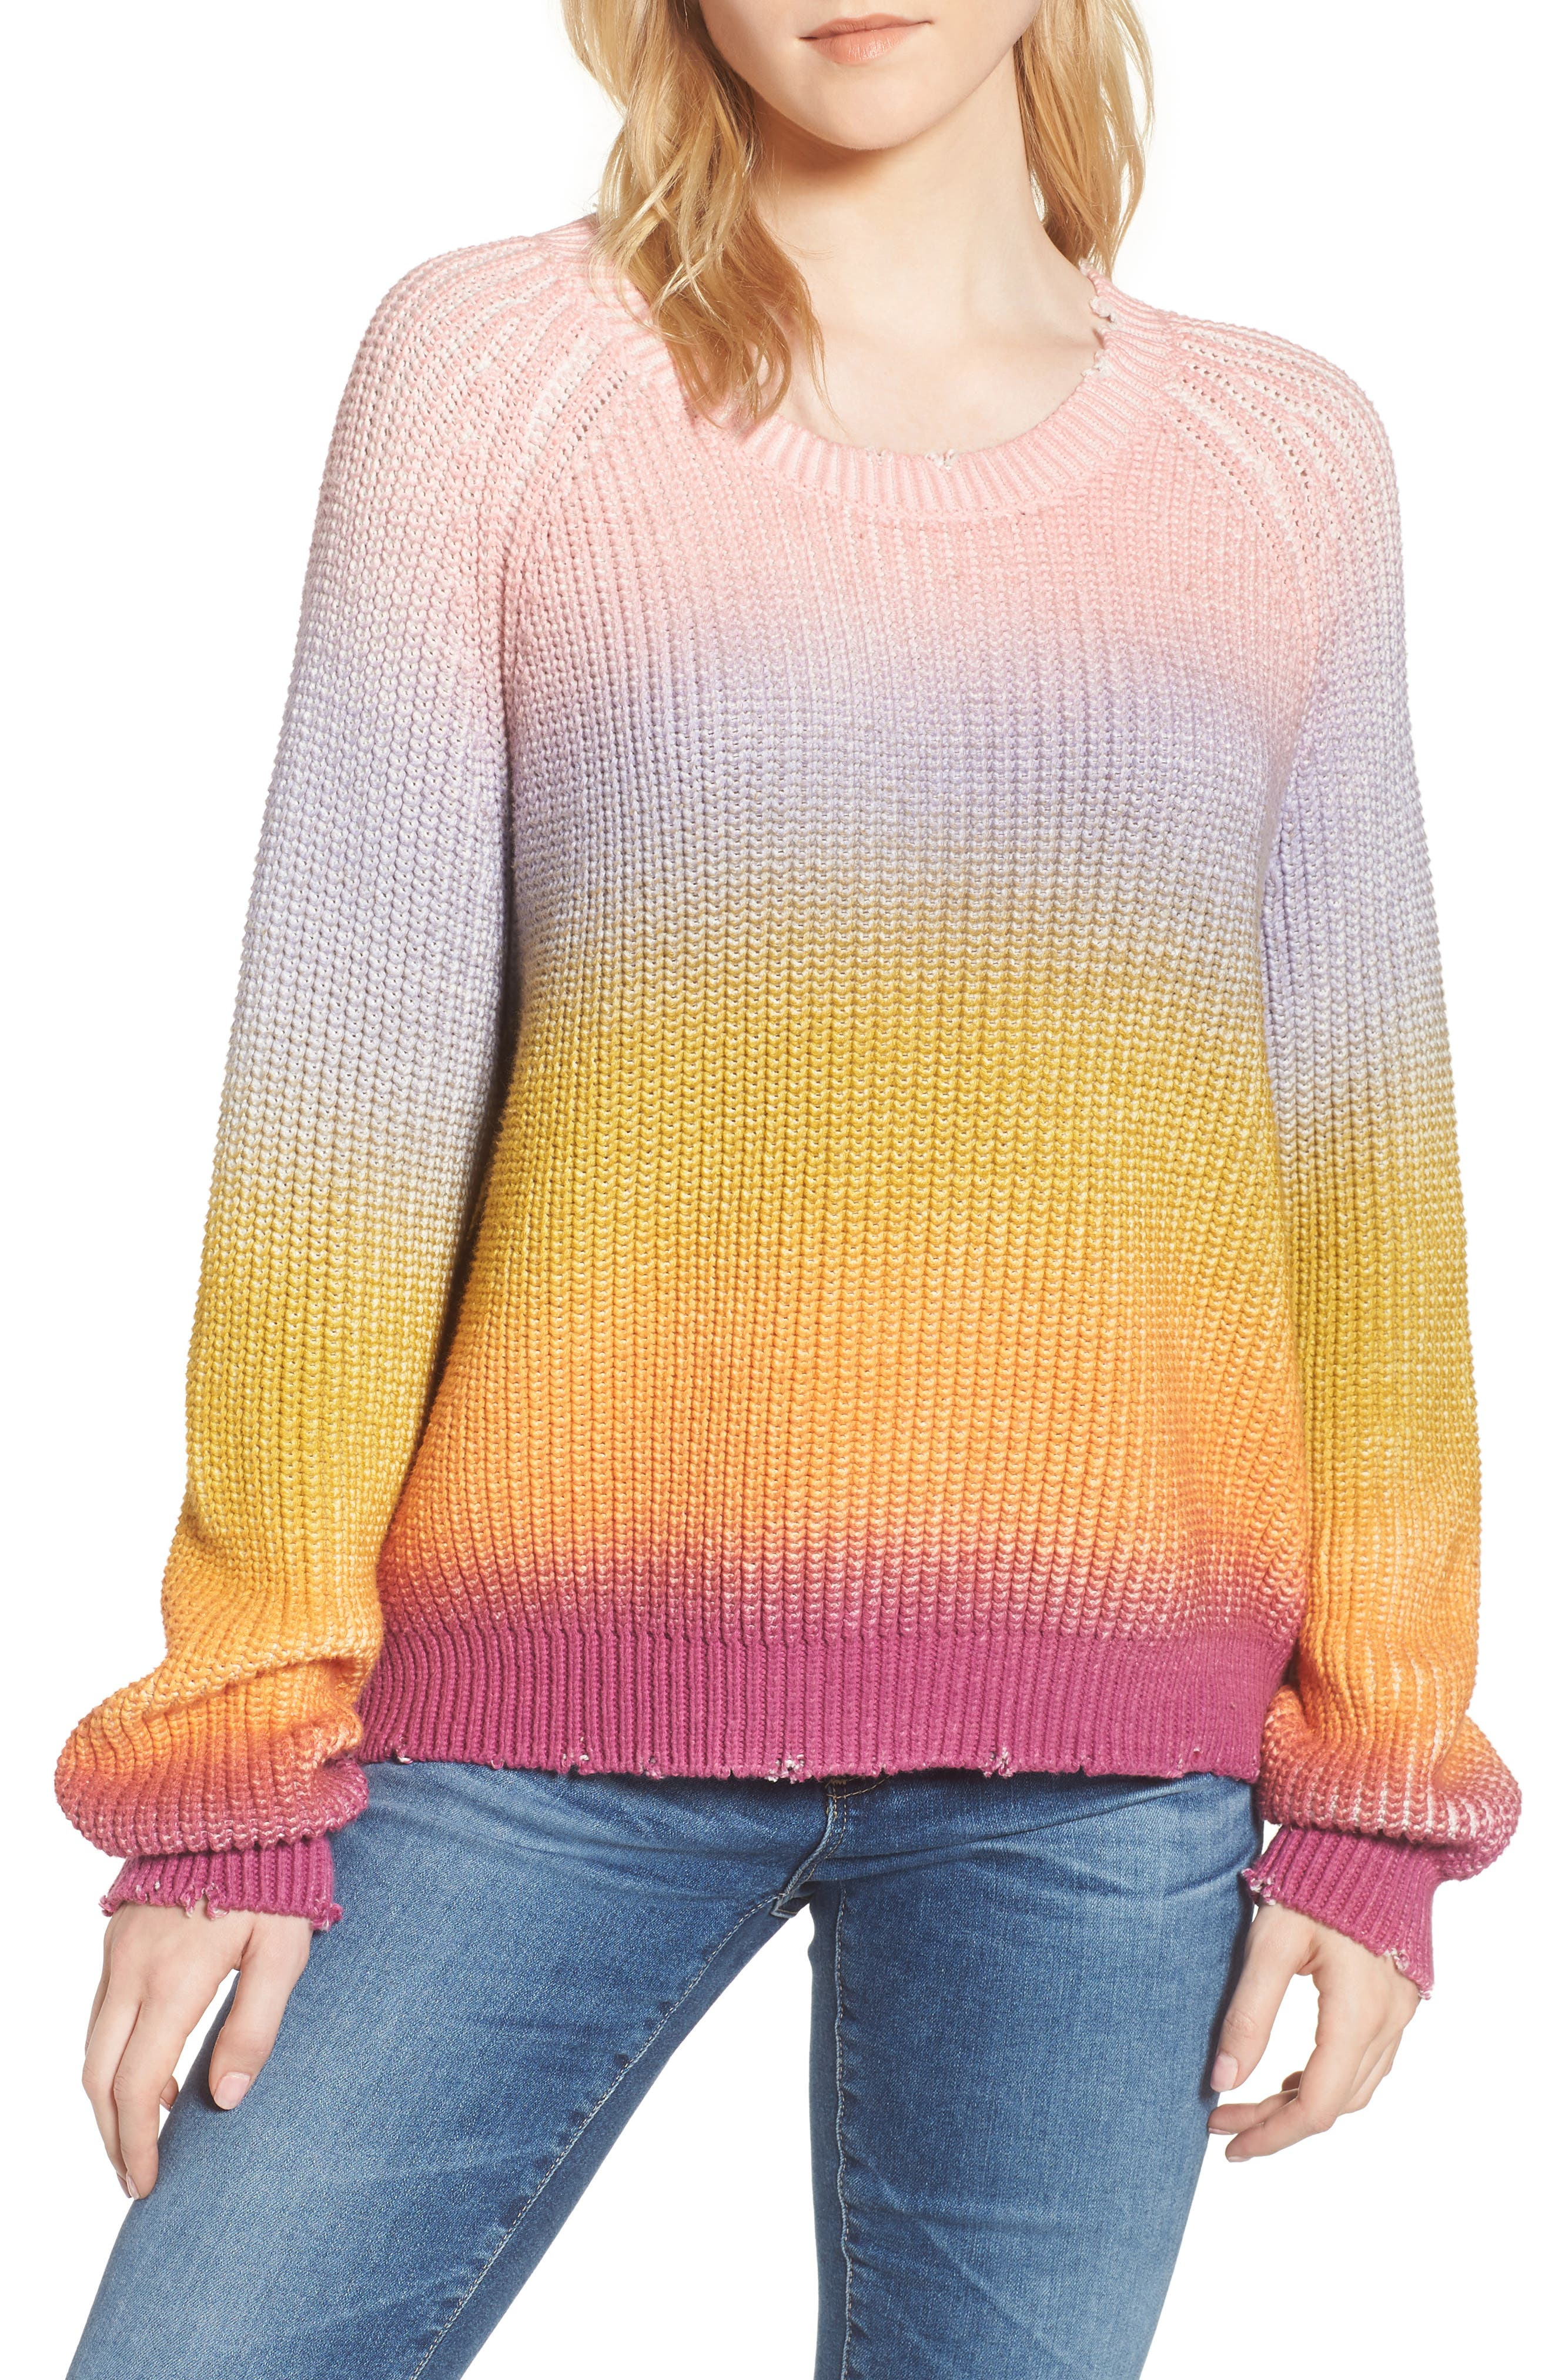 Kary Sweater,                         Main,                         color, Multicolor